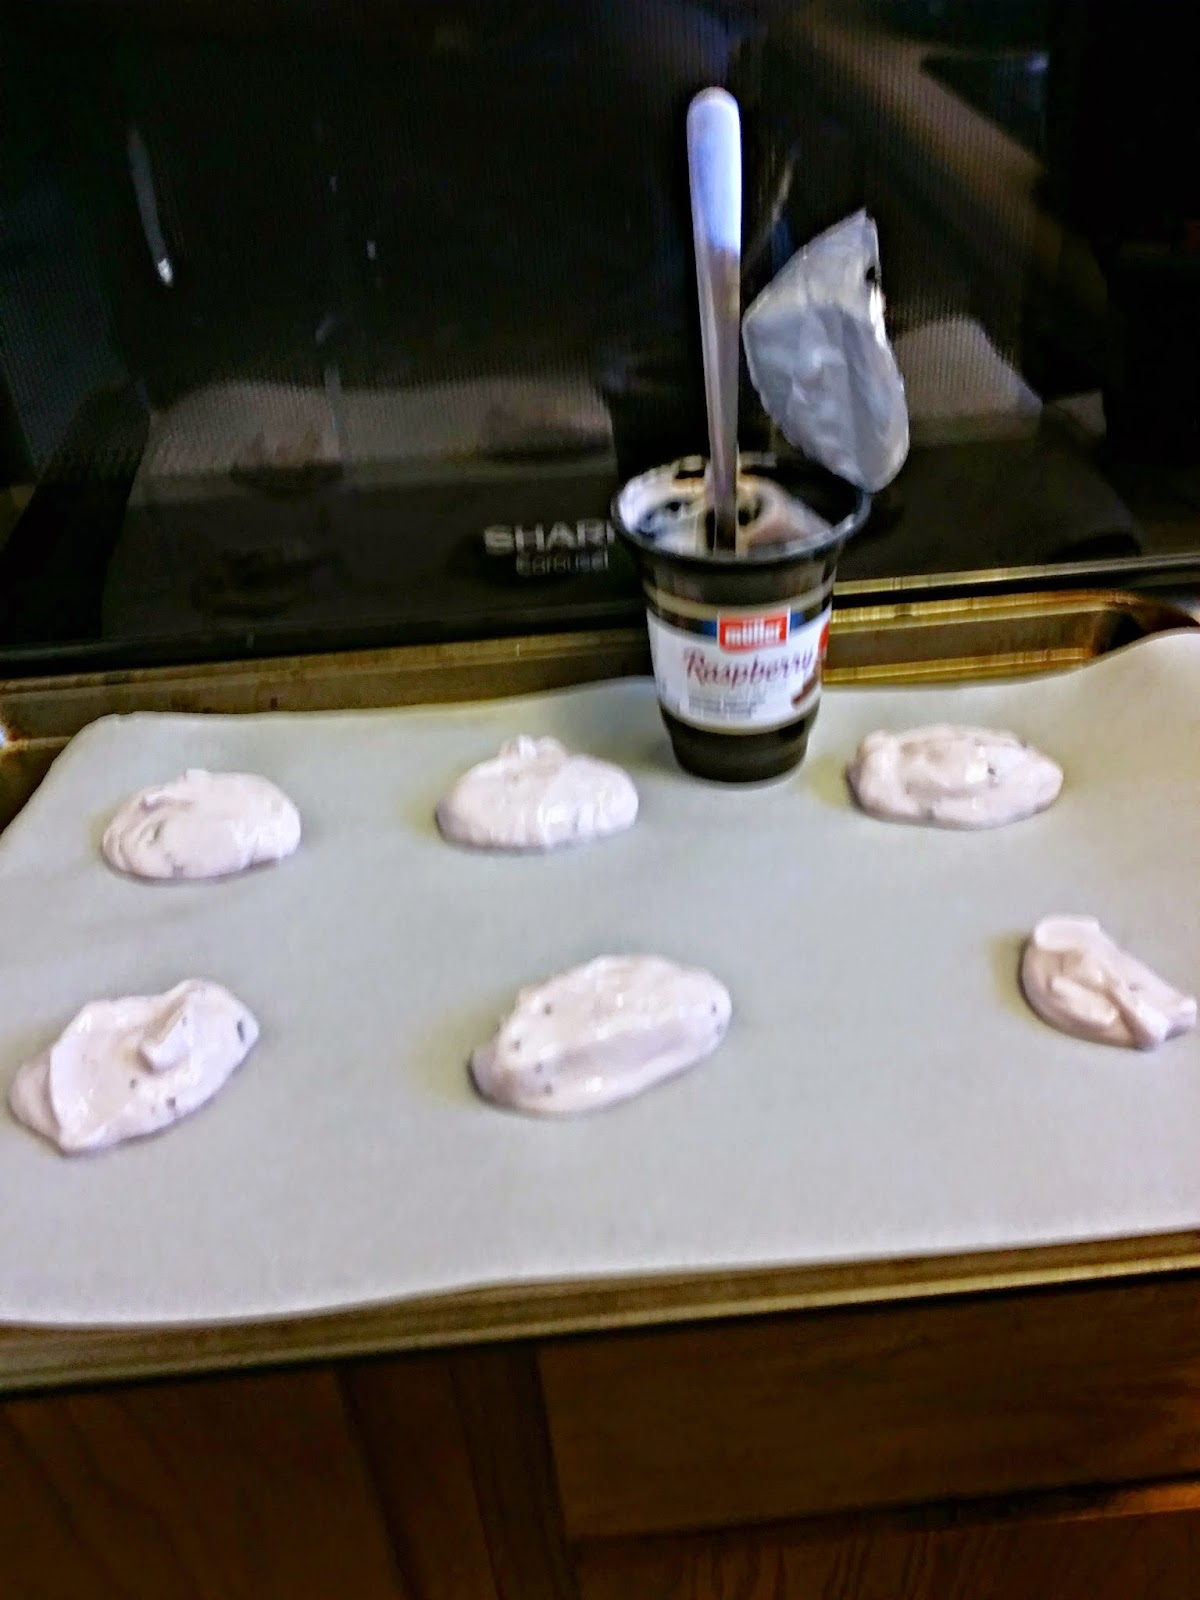 Yogurt on the cookie sheet #MullerMoment